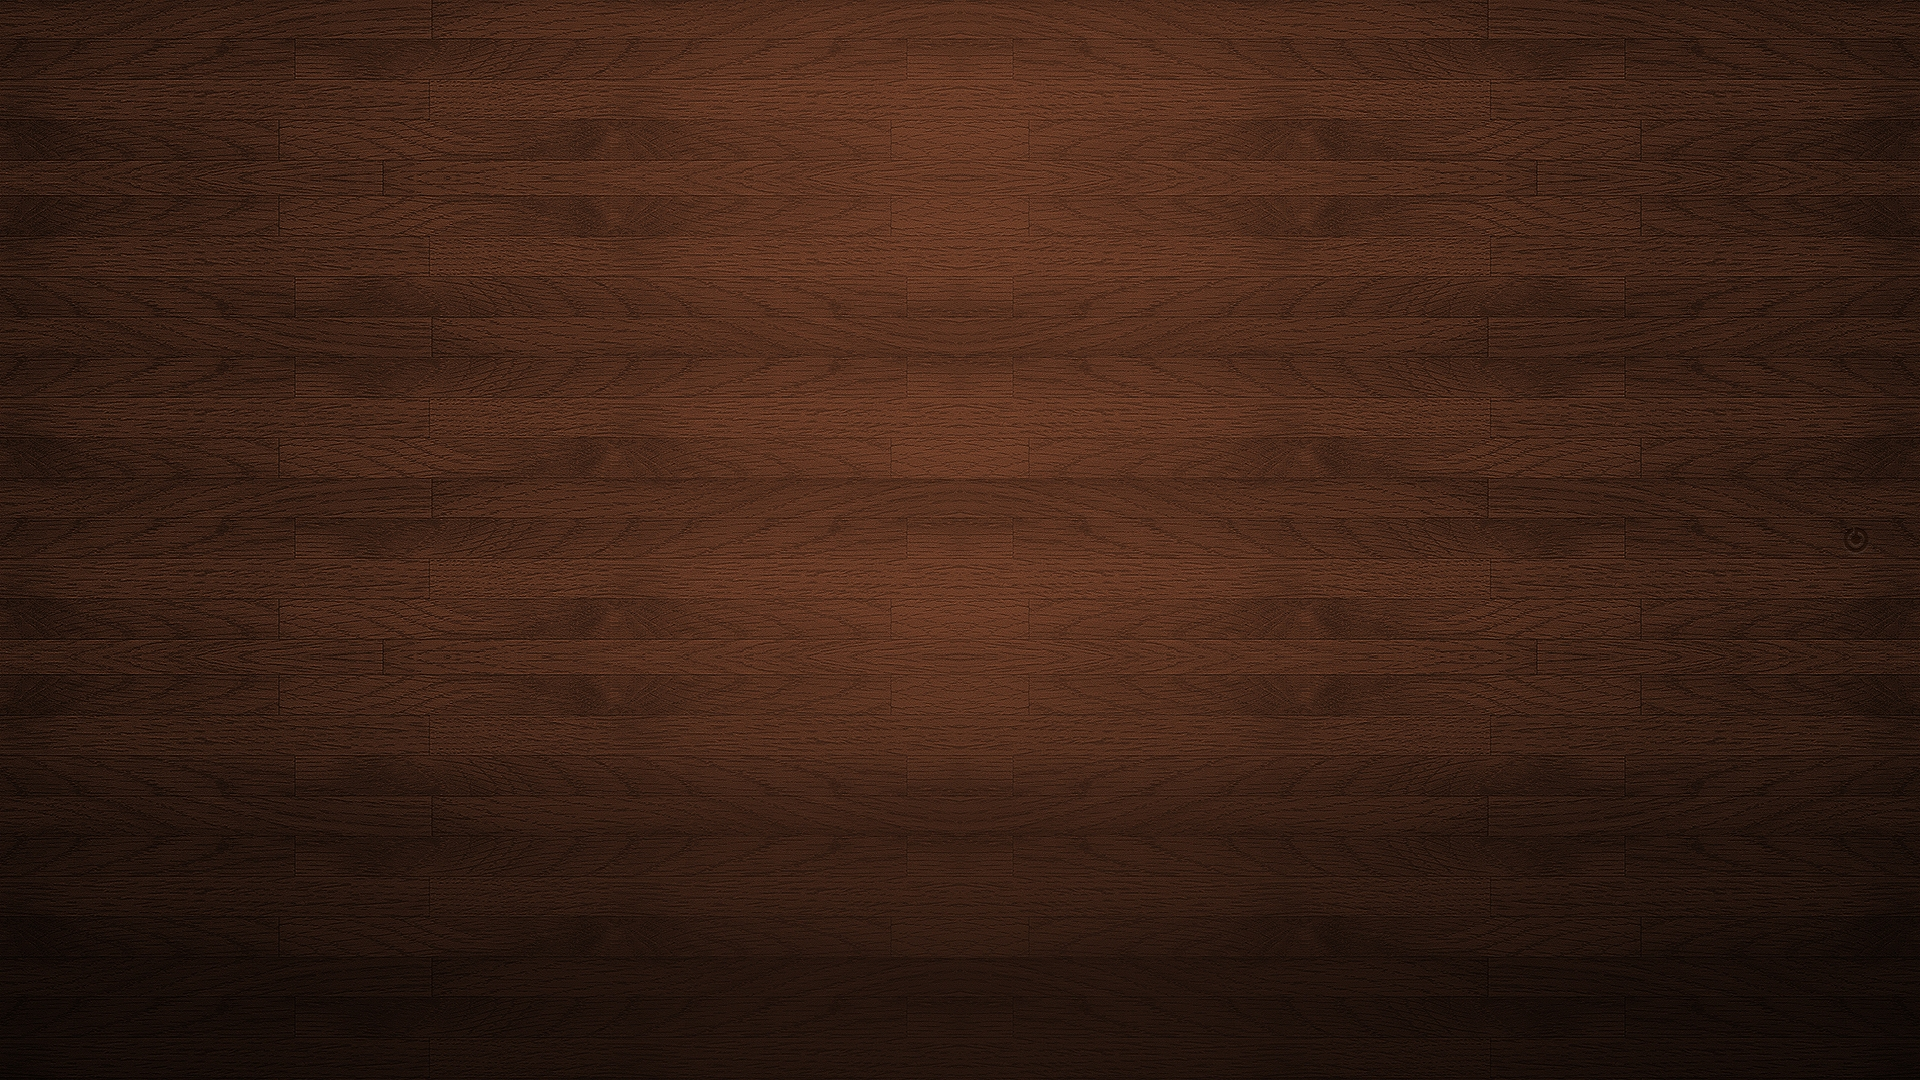 wood pattern wallpaper hd wallpapers